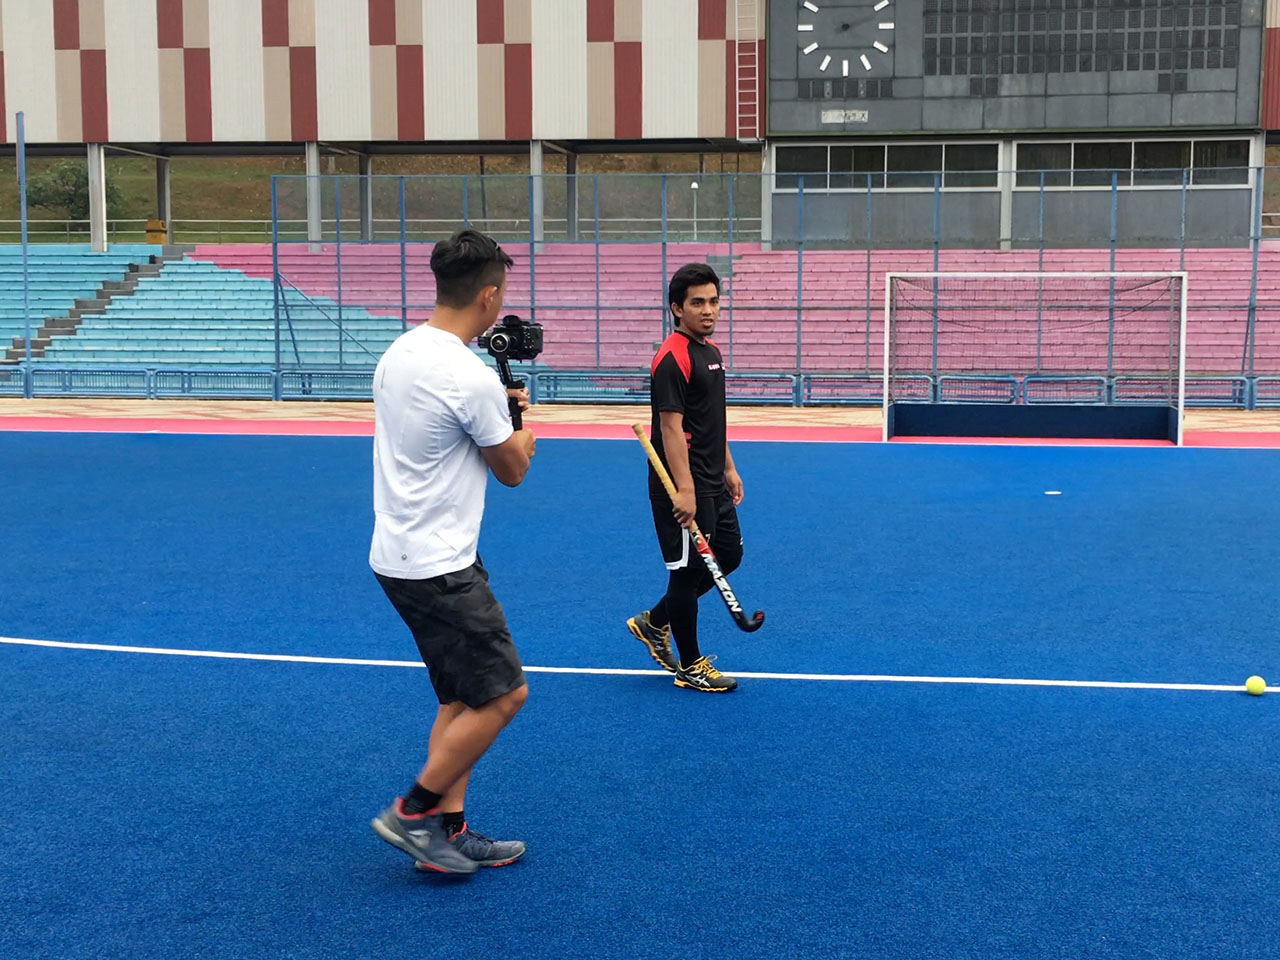 Our national hockey player, Fitri Saari tells us how he prepares for the SEA Games